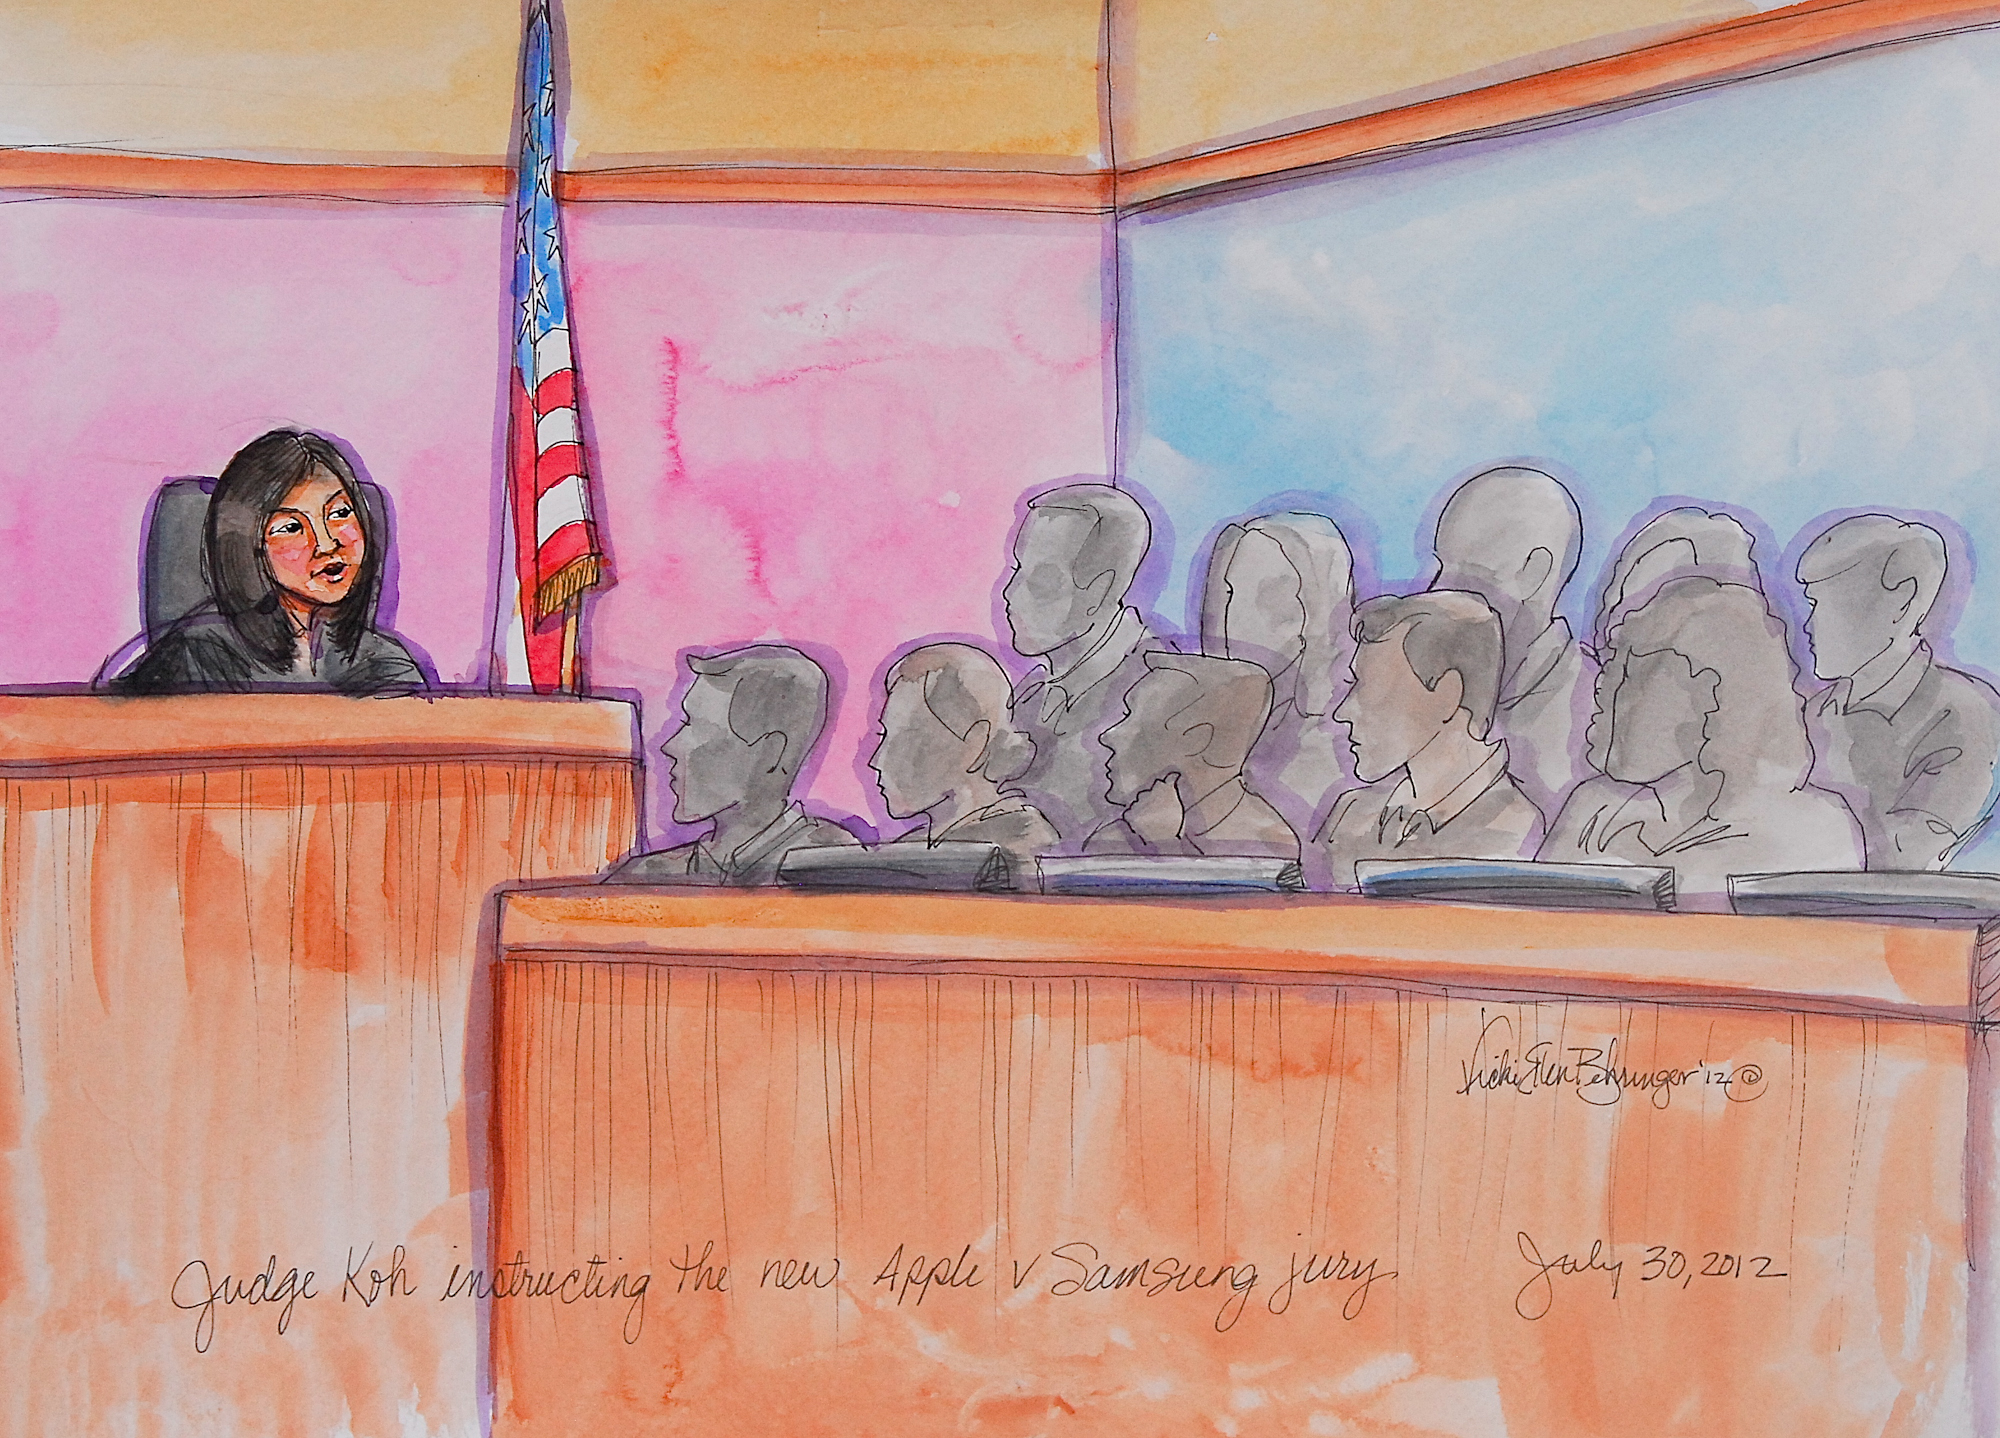 Samsung's targeting the jury in an effort to get a retrial.